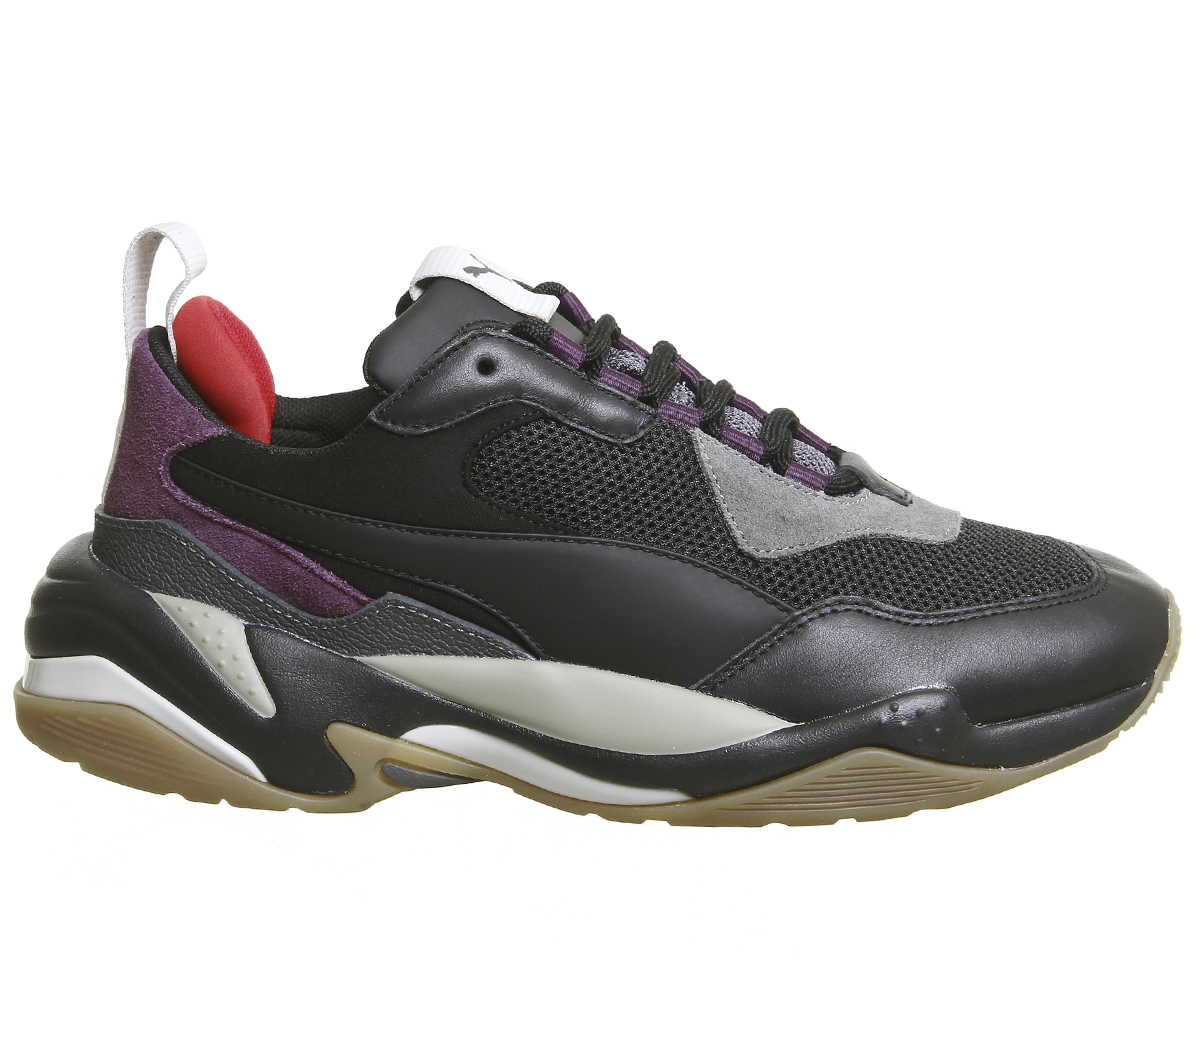 Sentinel Mens Puma Thunder Spectra Trainers Black Grey Purple Gum Trainers  Shoes 2d394b8eb